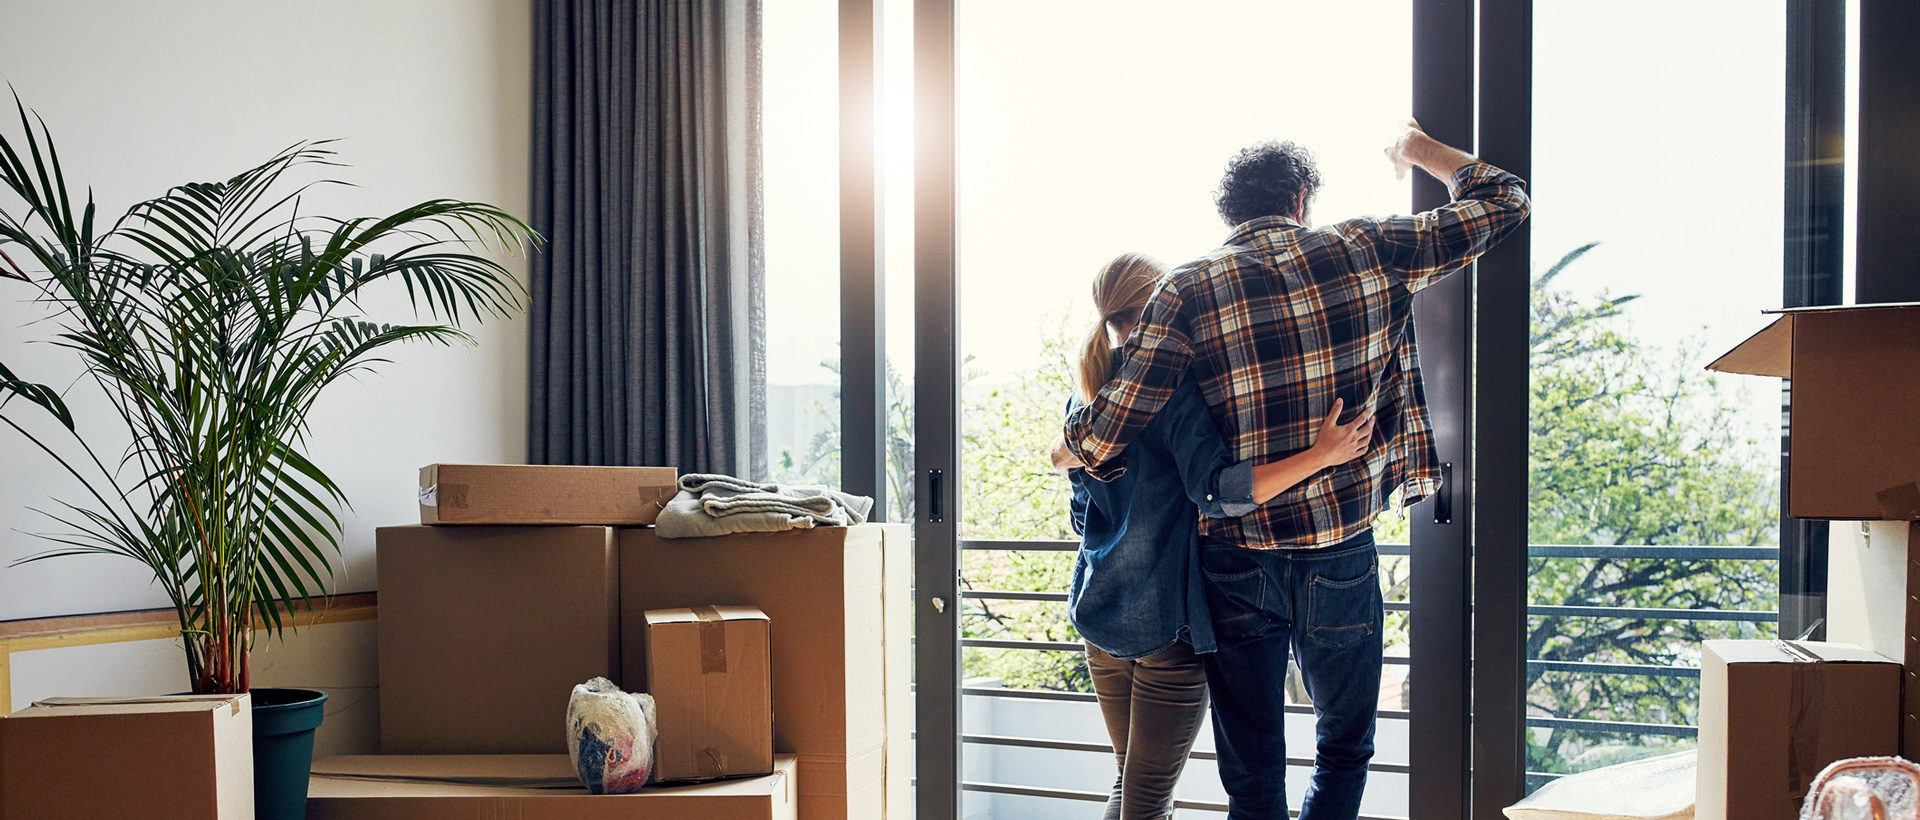 Man and woman embracing in a home with moving boxes